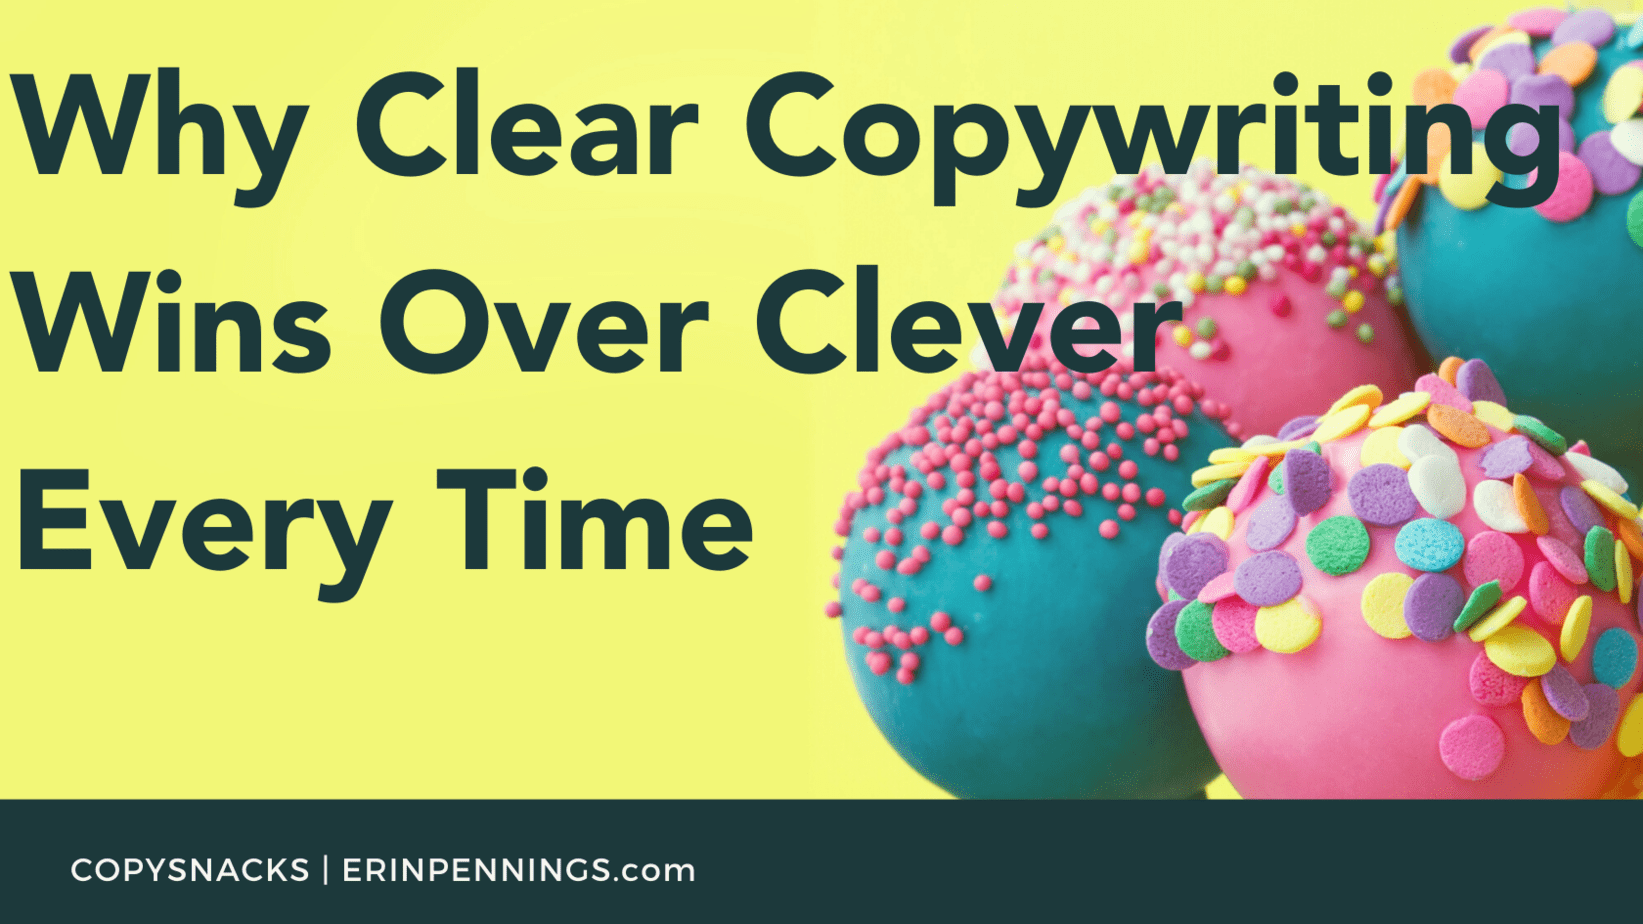 Why Clear Copywriting Wins Over Clever Every Time